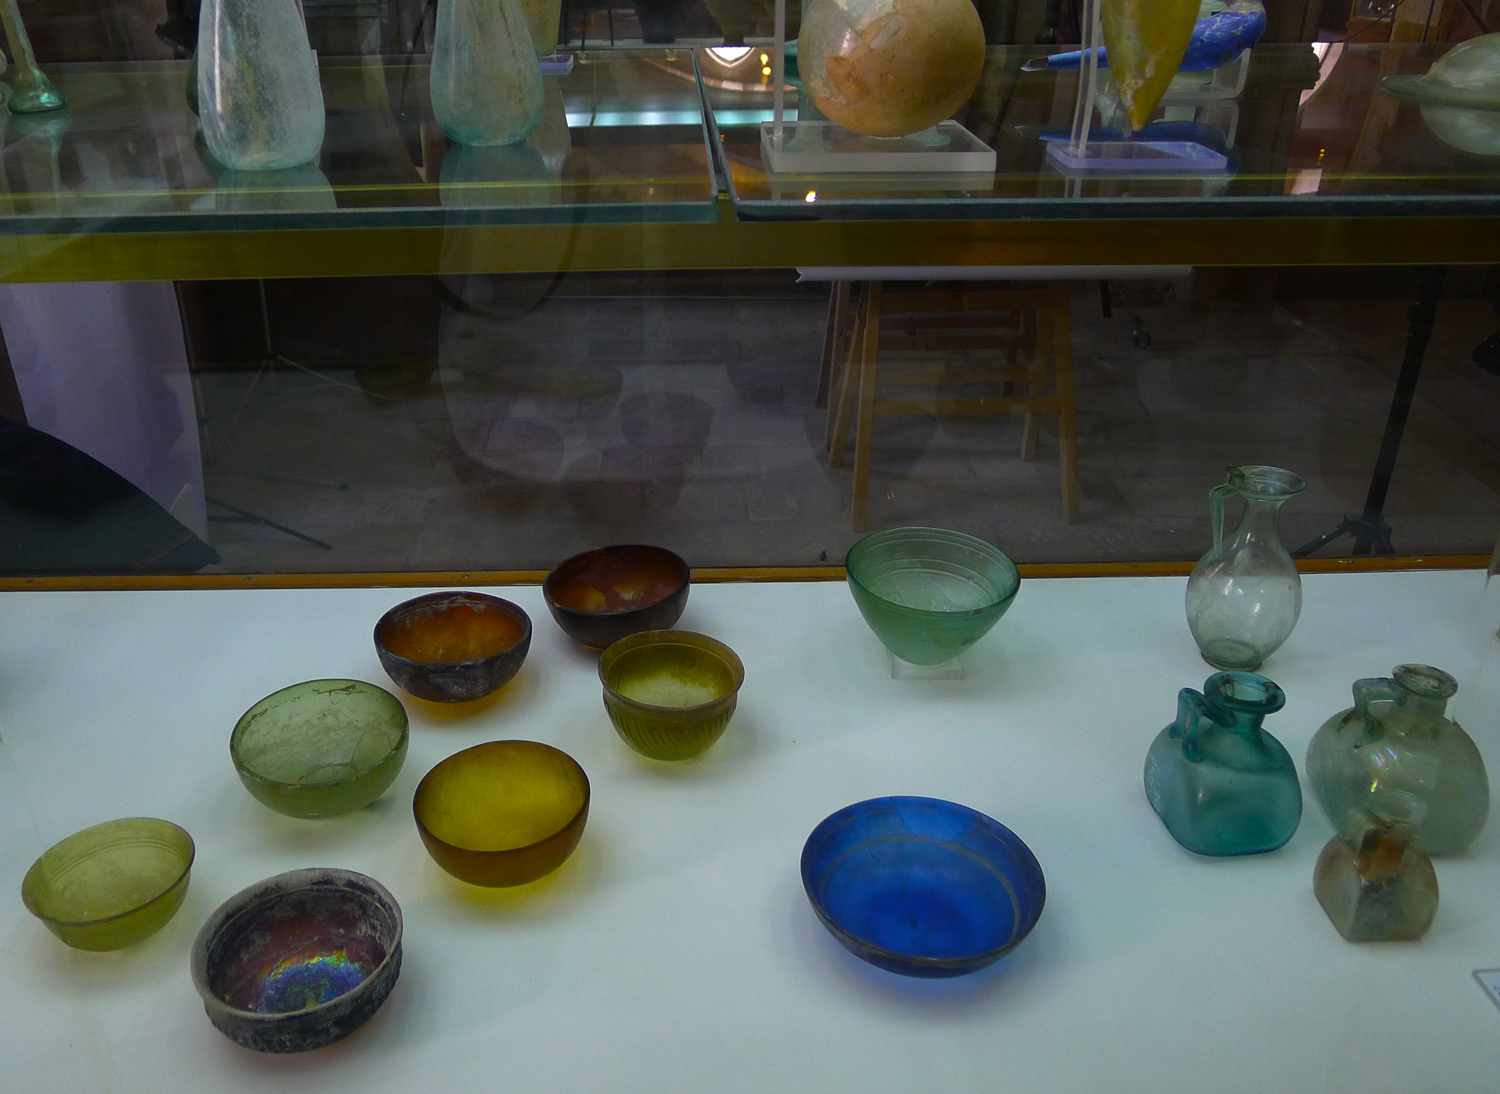 Glass bowls displayed in the archeological museum in Chania